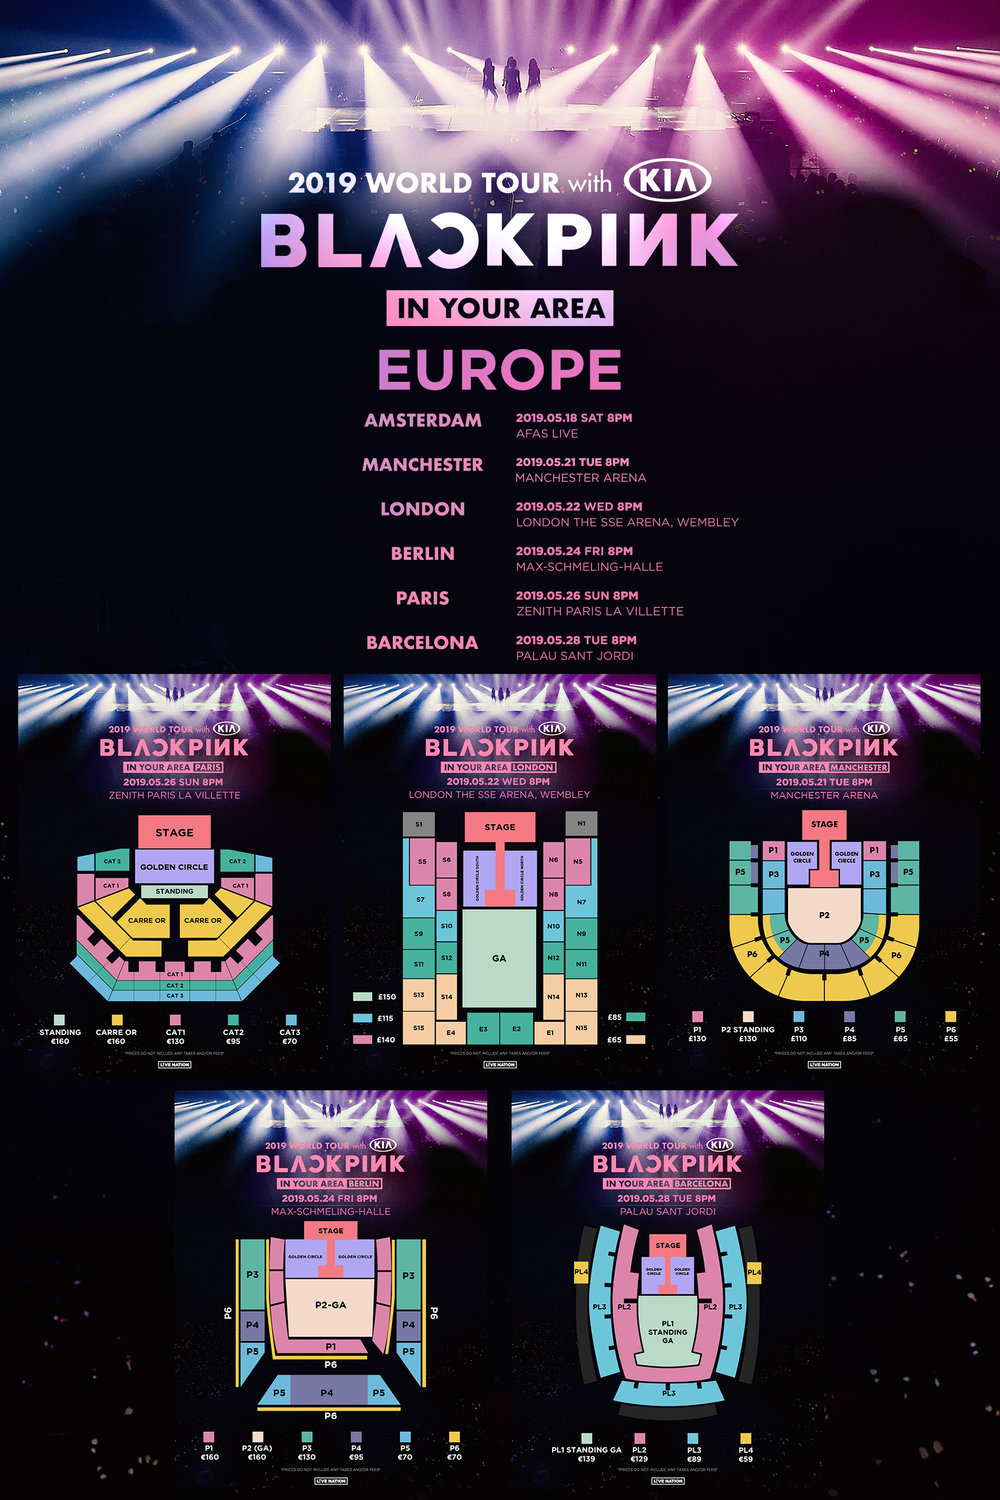 BLACKPINK EUROPE TOUR MAP